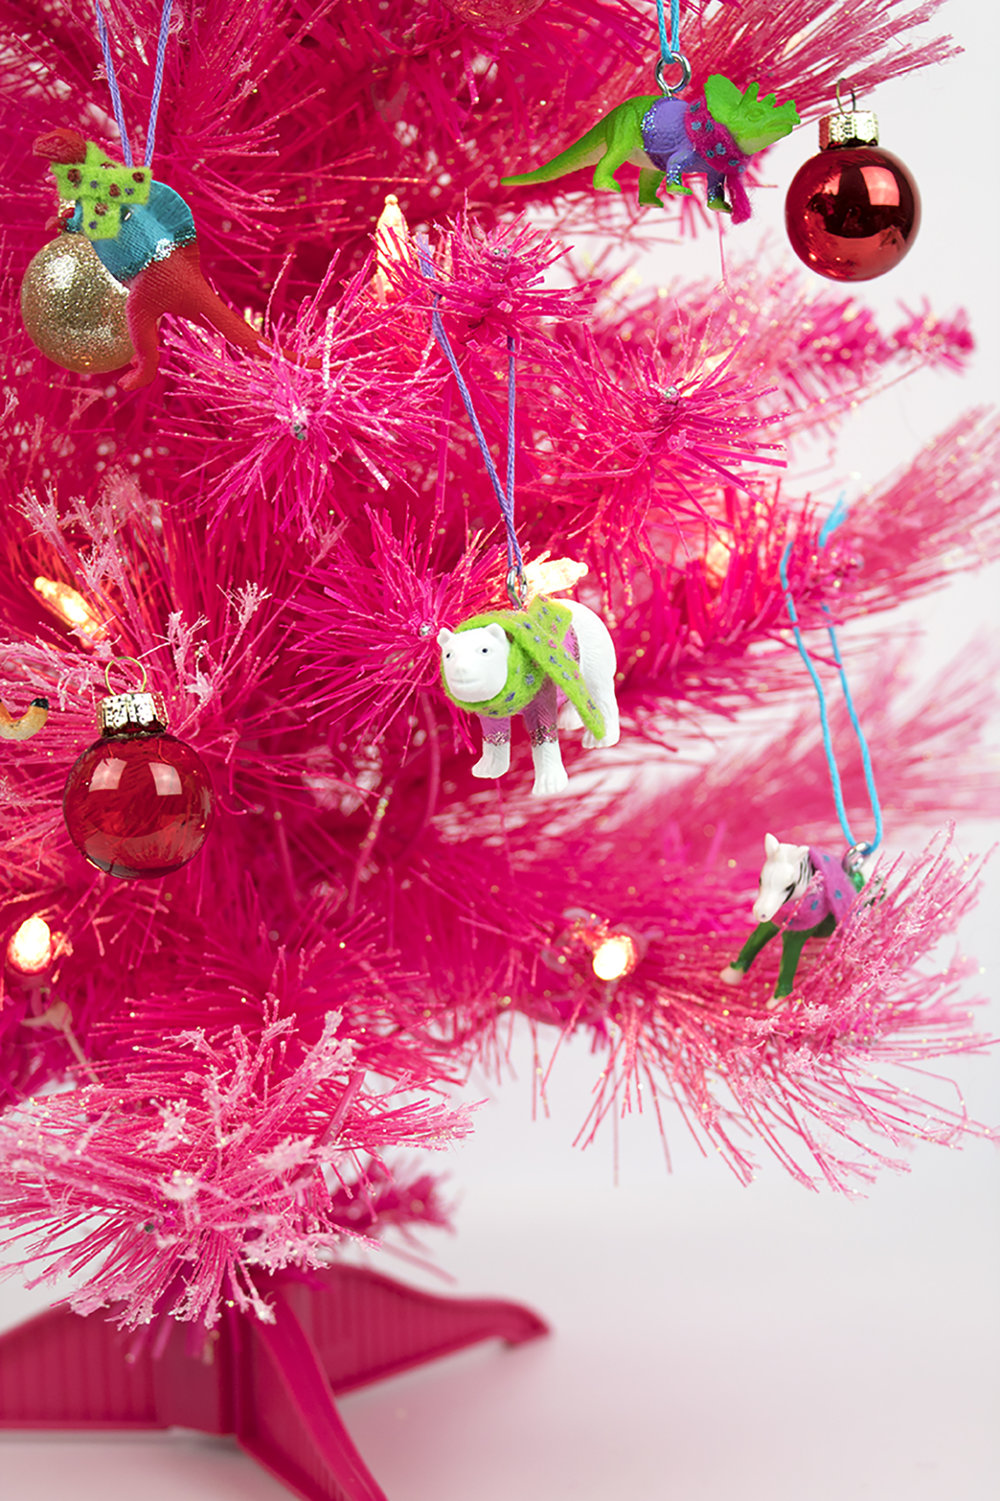 You need these festive friends on your tree! The best part (aside from how adorably colorful they are) is that they're not breakable! Plus, you can make them in any color scheme you'd like. So, pop on a Christmas movie, grab your supplies, and get crafting! #diychristmasornament #diychristmassweater #christmadornamentshomemade